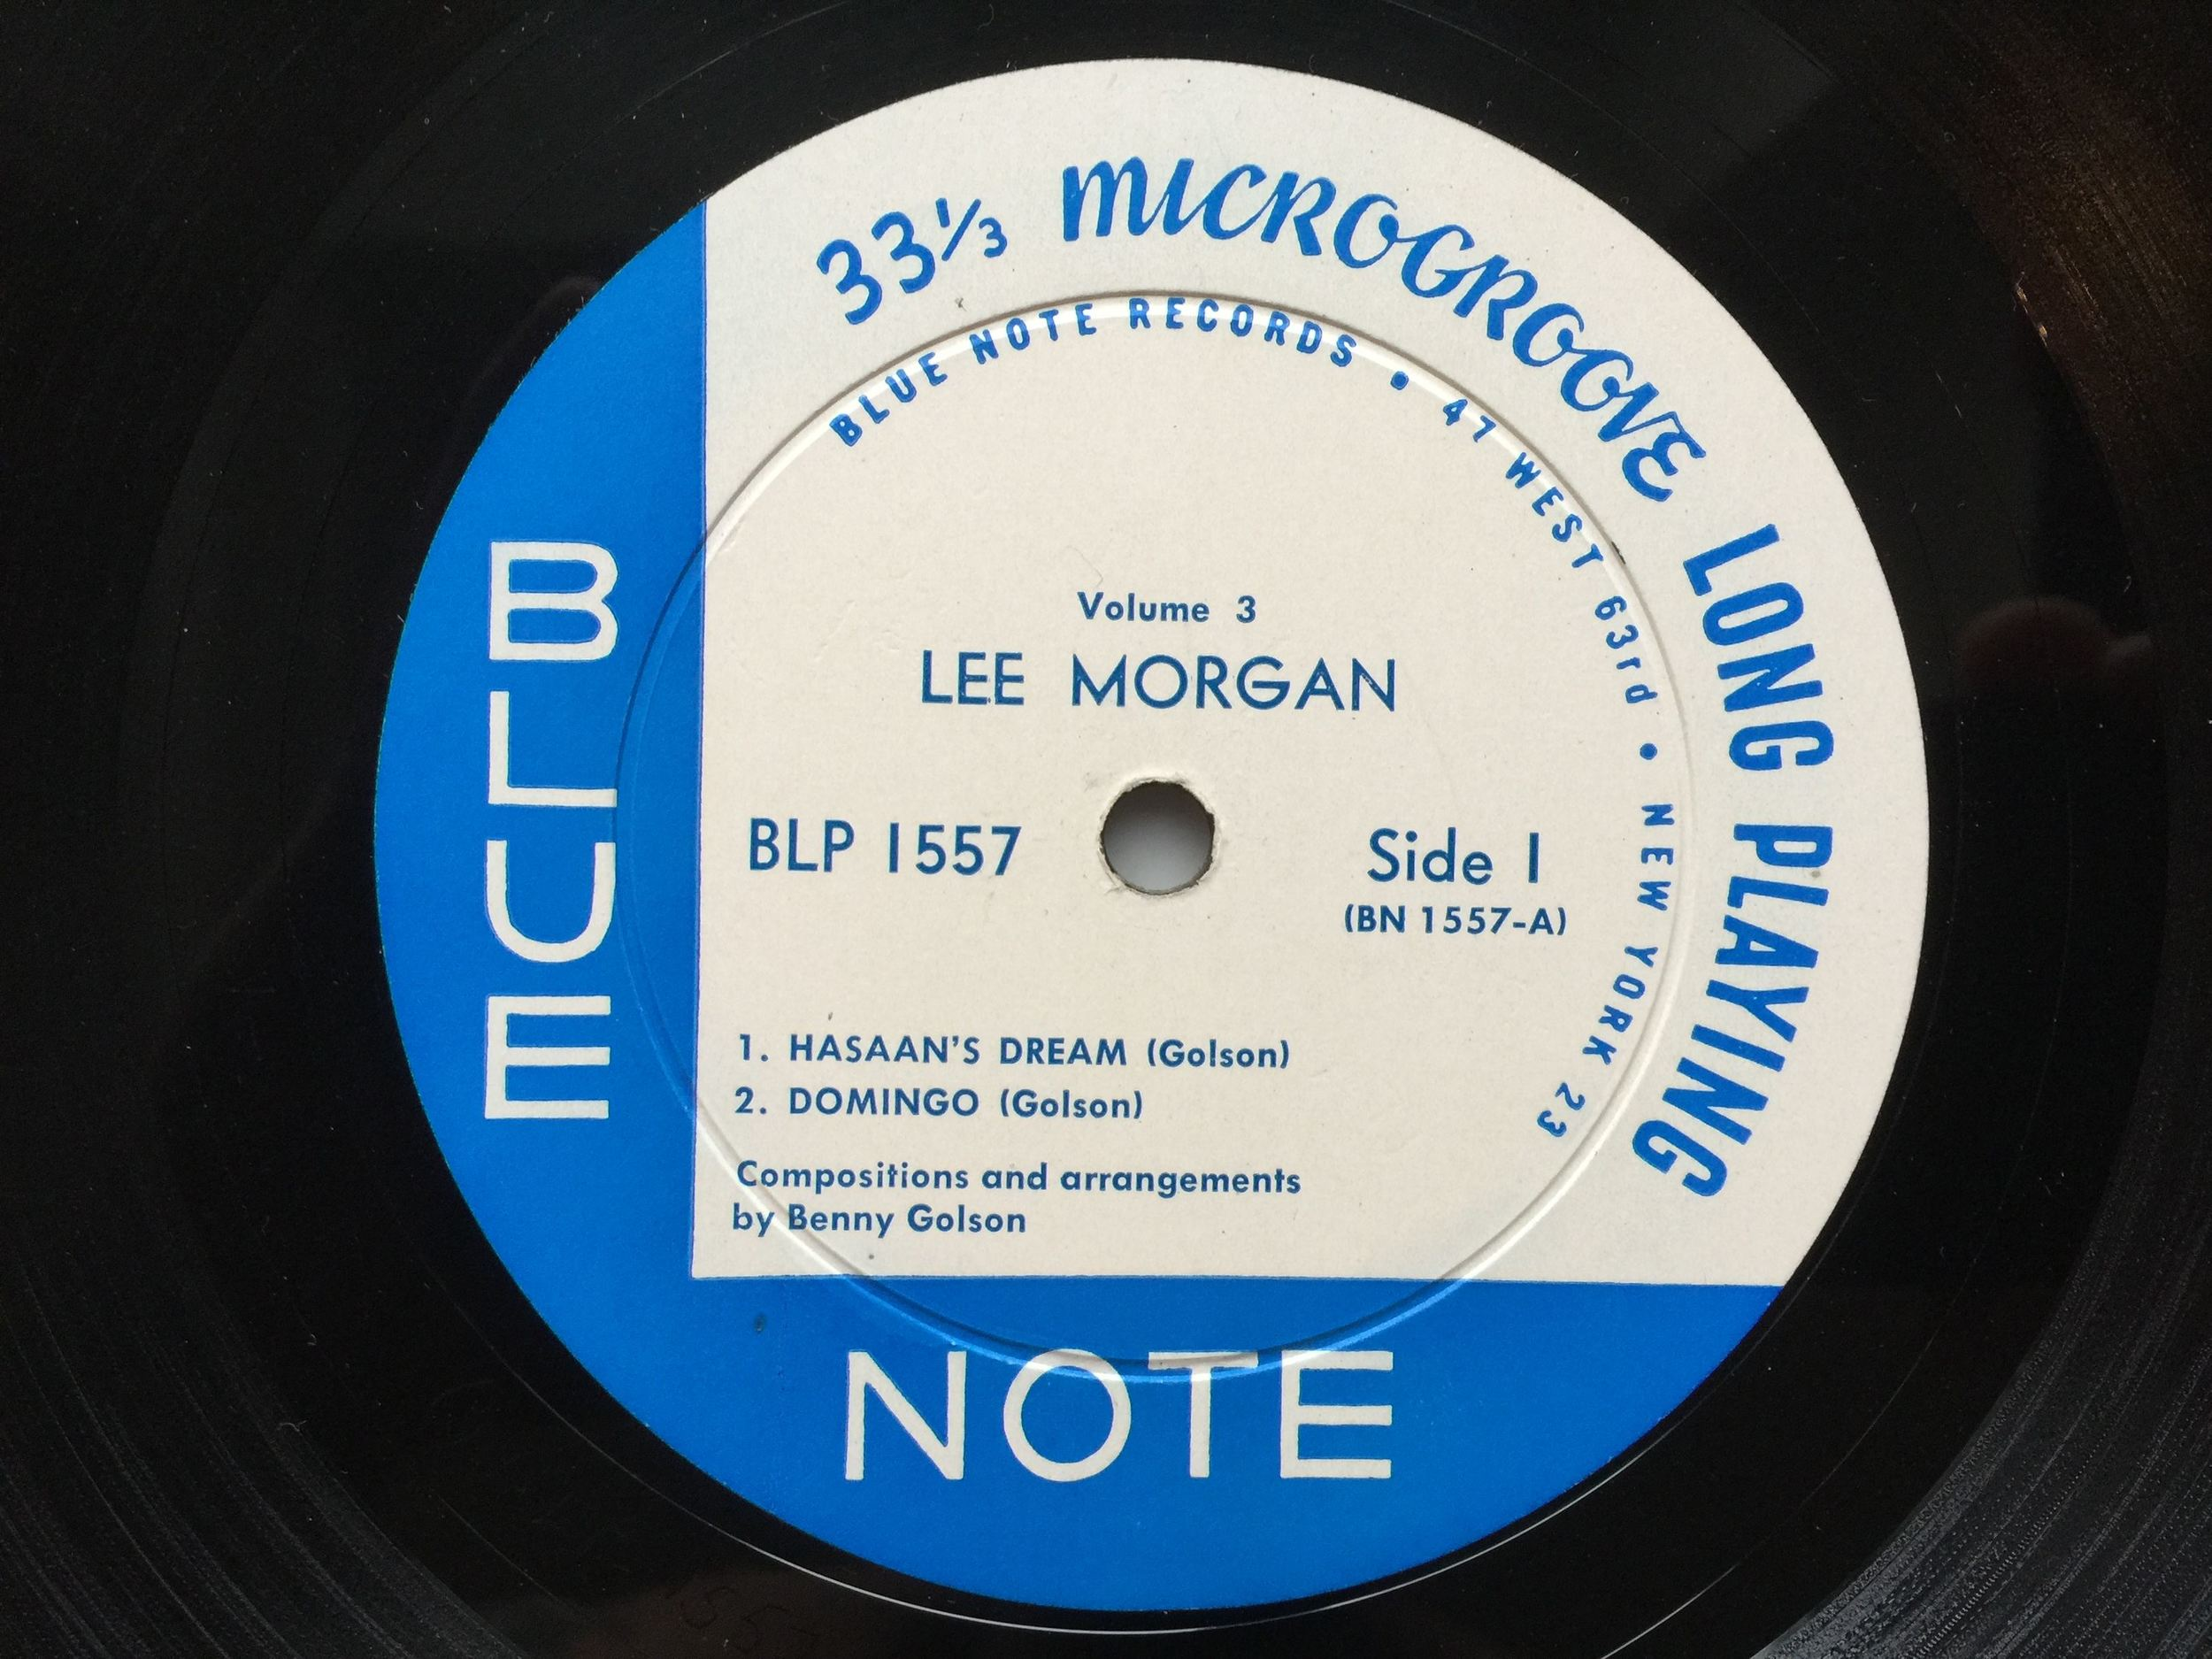 blp1557_label_side1.jpg